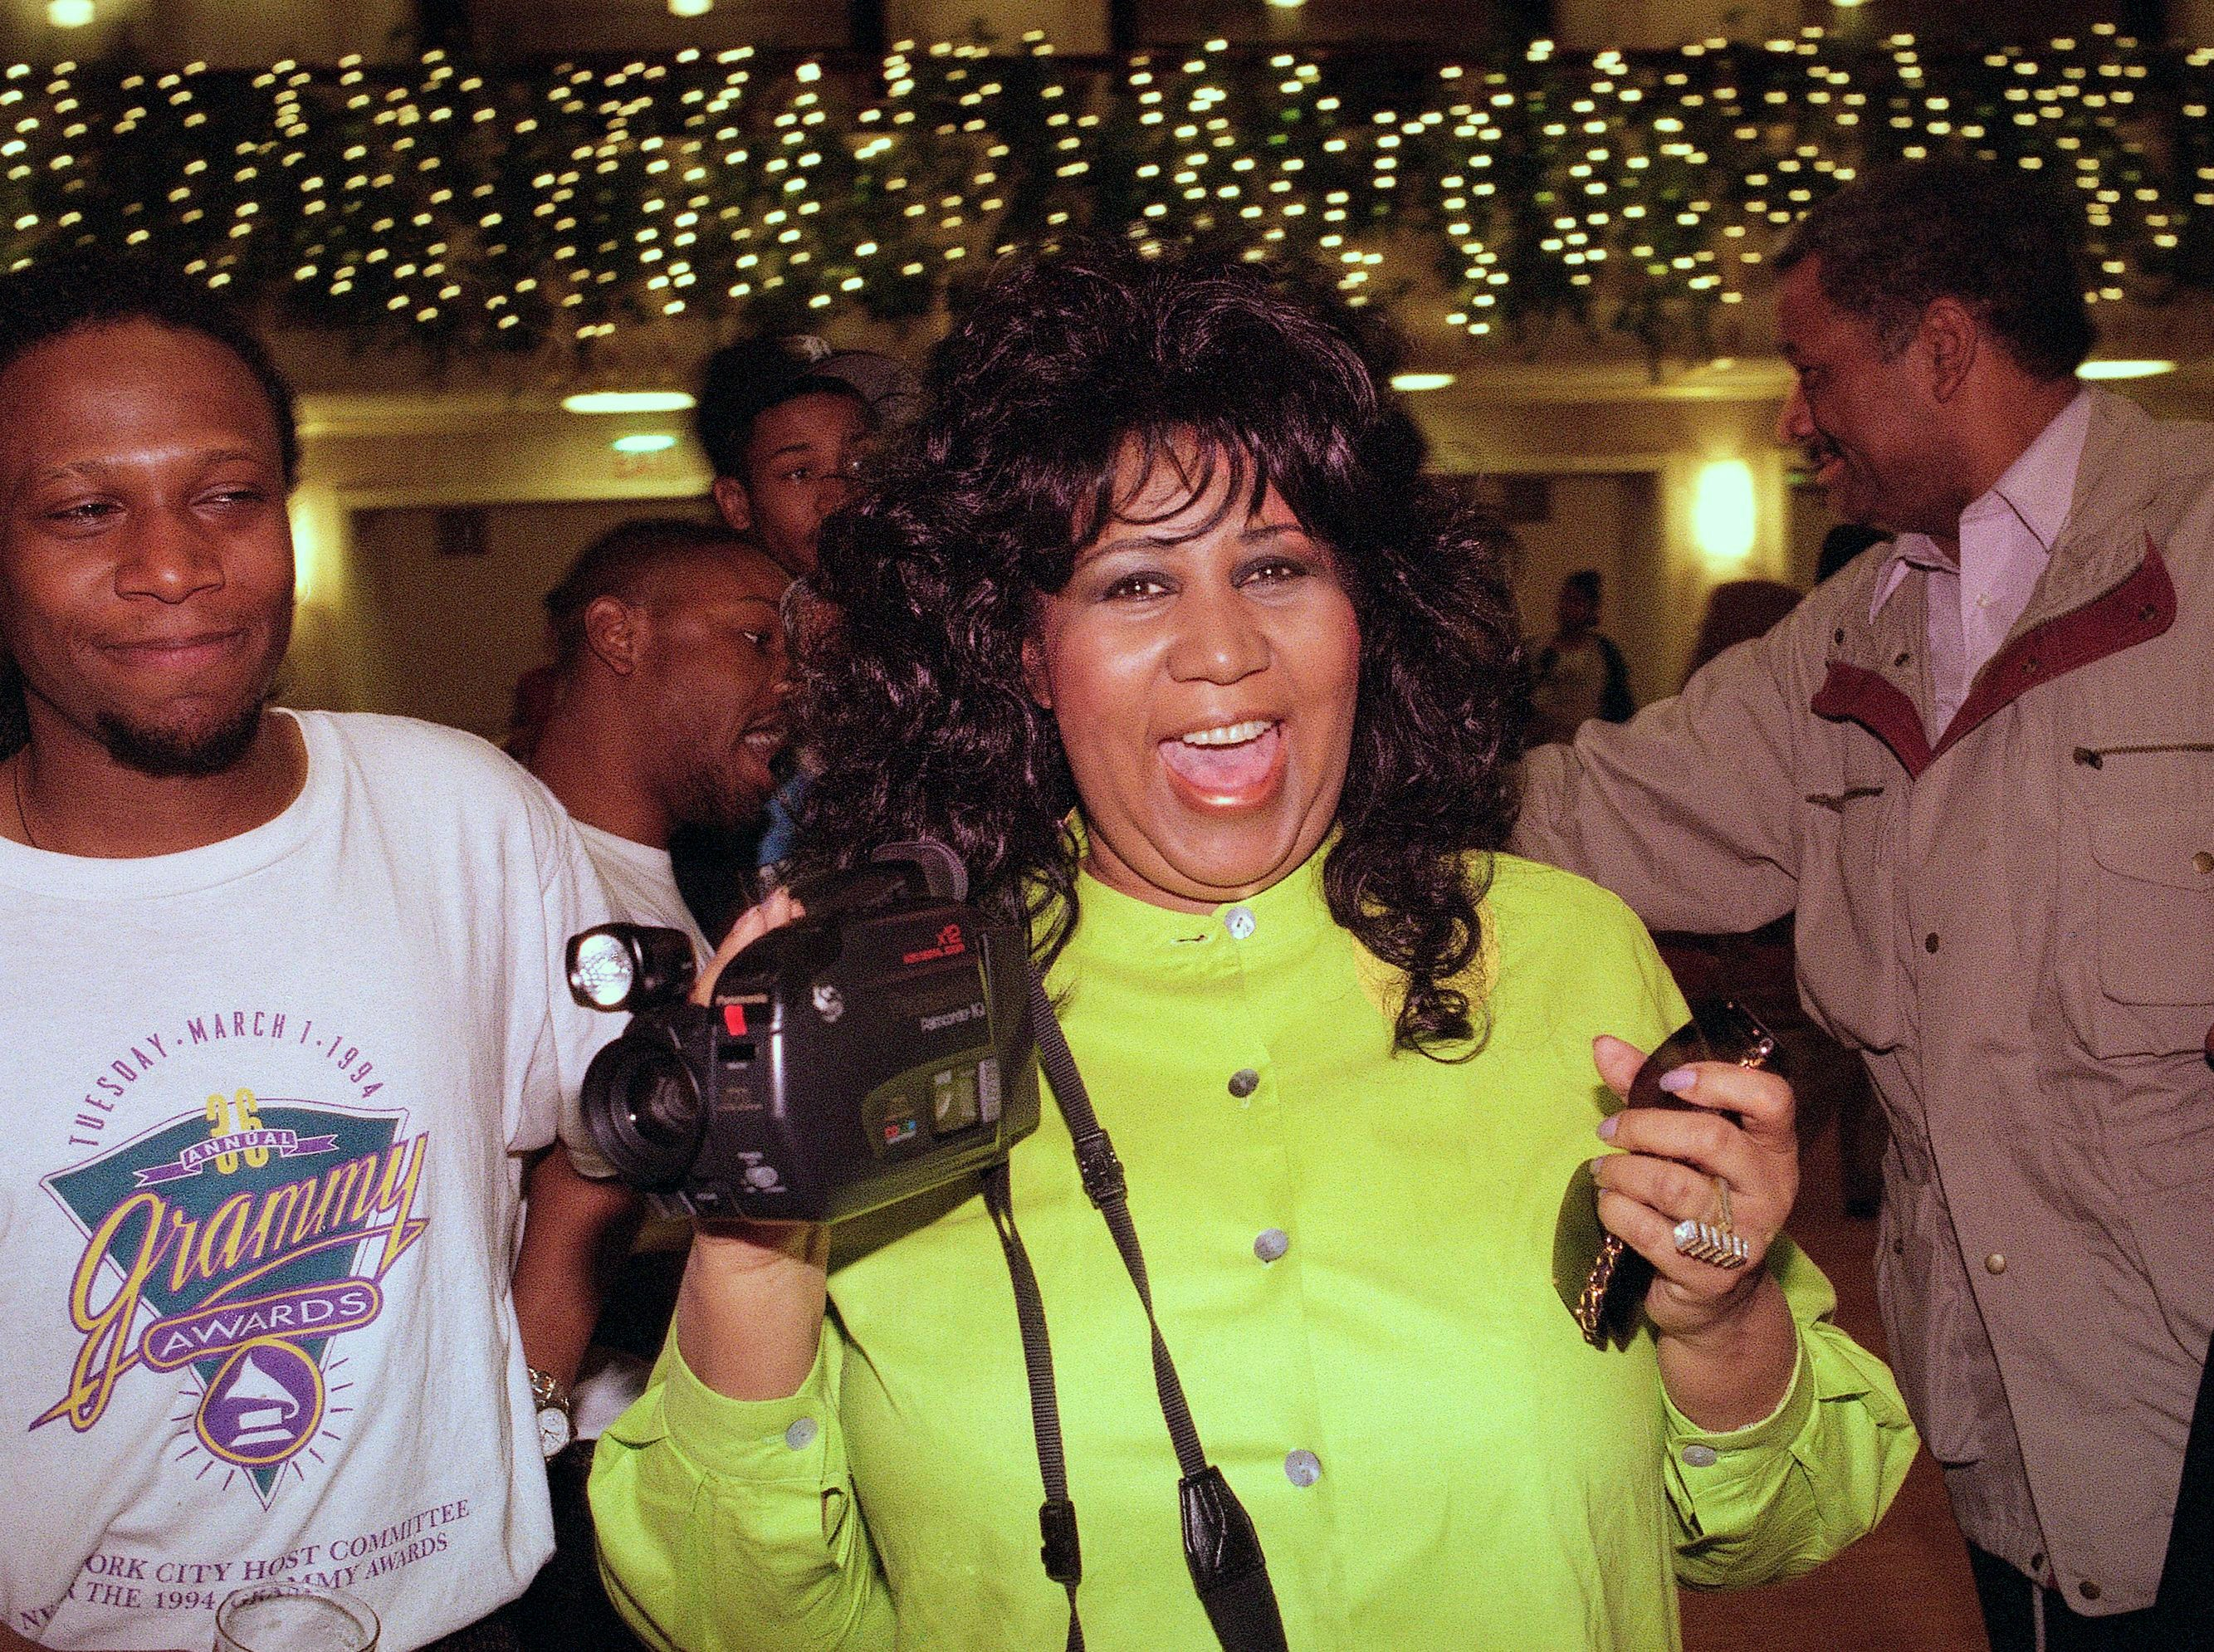 Aretha Franklin plays with a camcorder before a concert rehearsal in New York, April 27, 1995. Franklin's Thursday performance is to benefit New York City's Presbyterian Hospital's Sloane Hospital for Women. (AP Photo/Joe Tabacca)